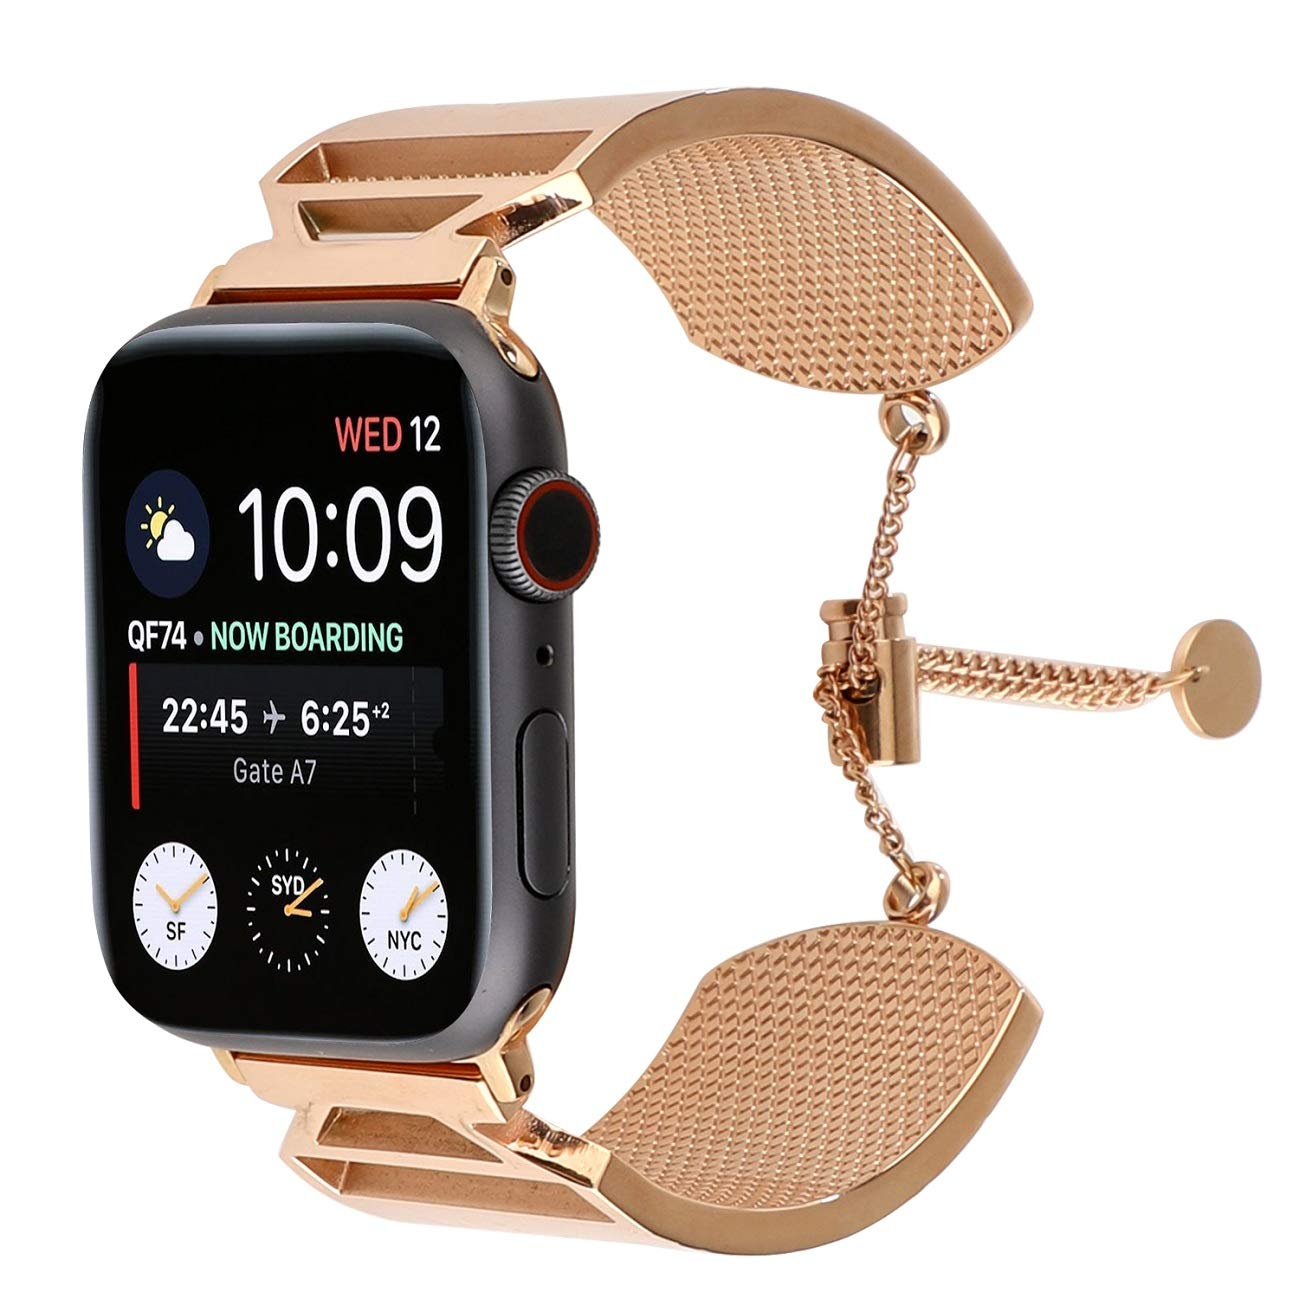 Juzzhou Replacement for Watch Band Apple Watch iWatch Series 1 2 3 4 Edition Stainless Steel Wriststrap Wristband Bracelet Wrist Strap with Metal Adapter Clasp Woman Girl Lady Boy Rose Gold 38mm 40mm